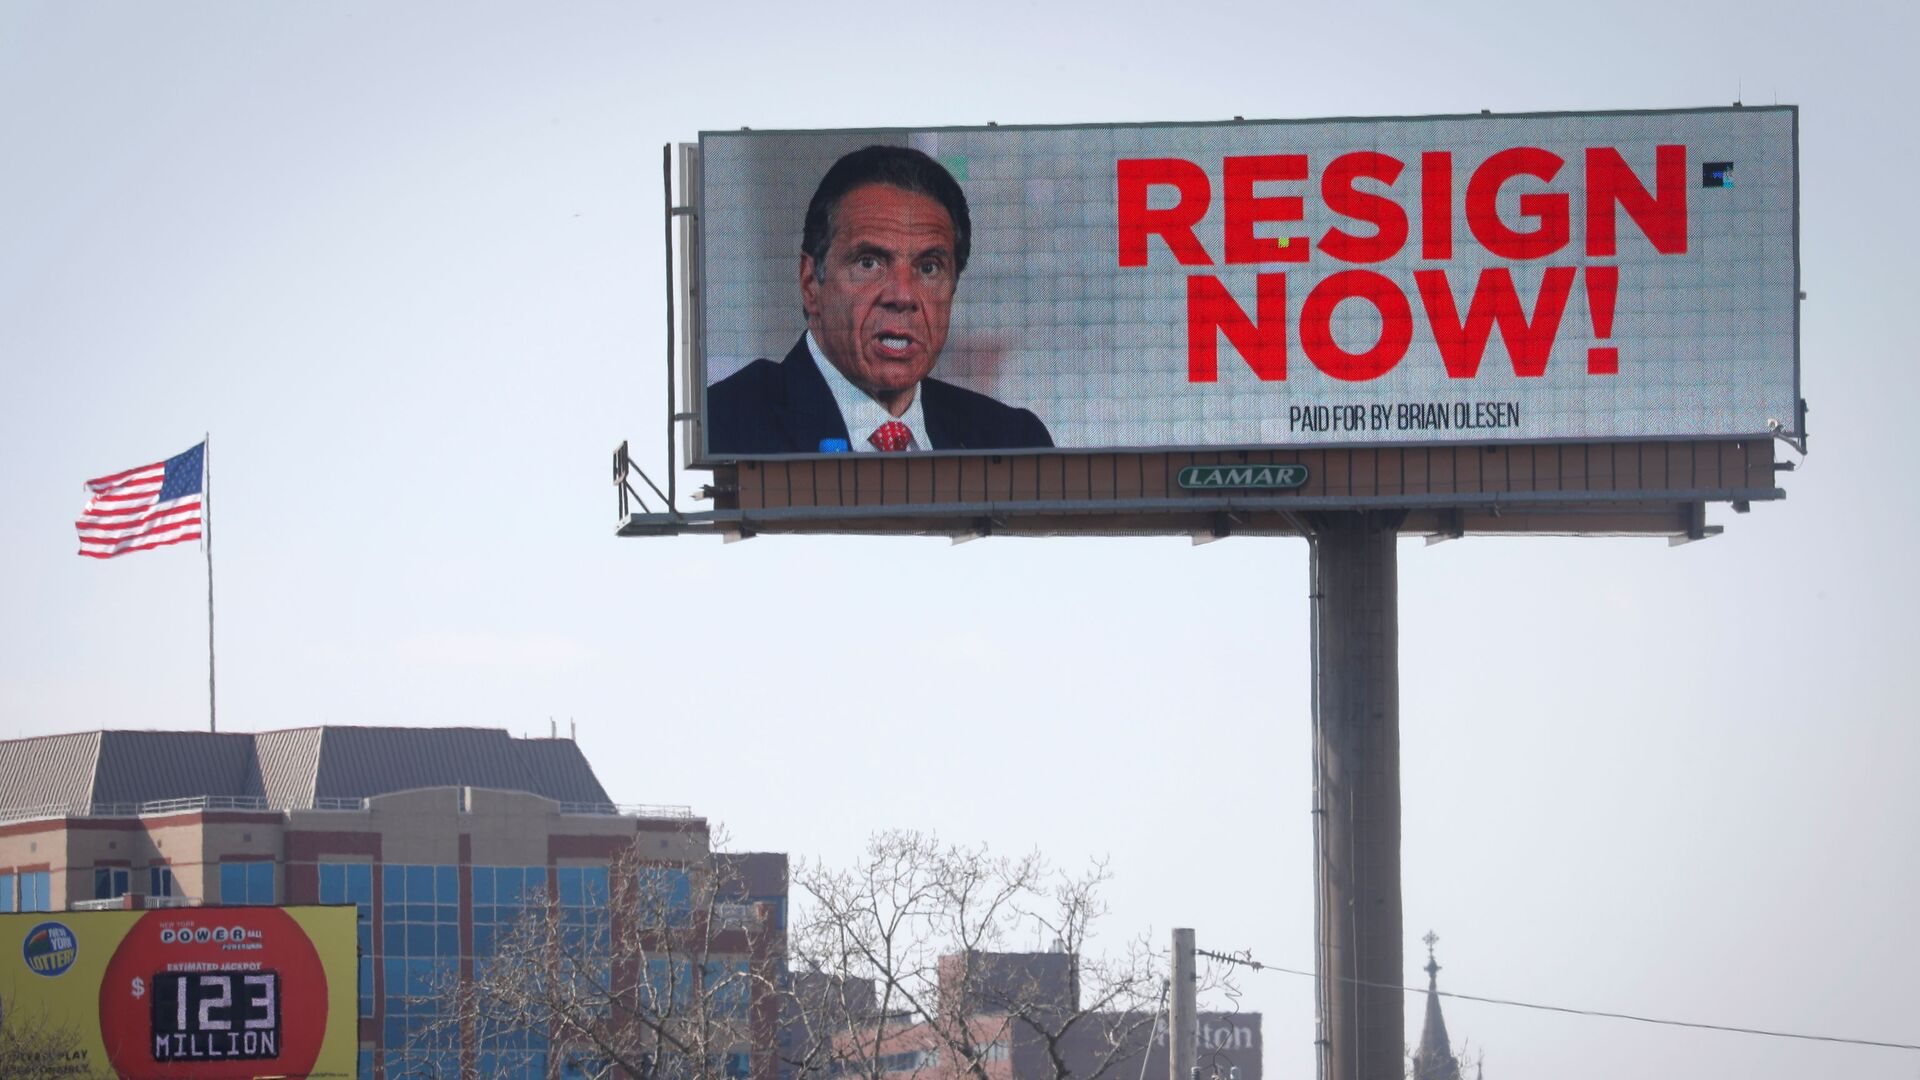 Electronic billboard displays message for New York Governor Cuomo to Resign Now in Albany - Sputnik Italia, 1920, 07.09.2021